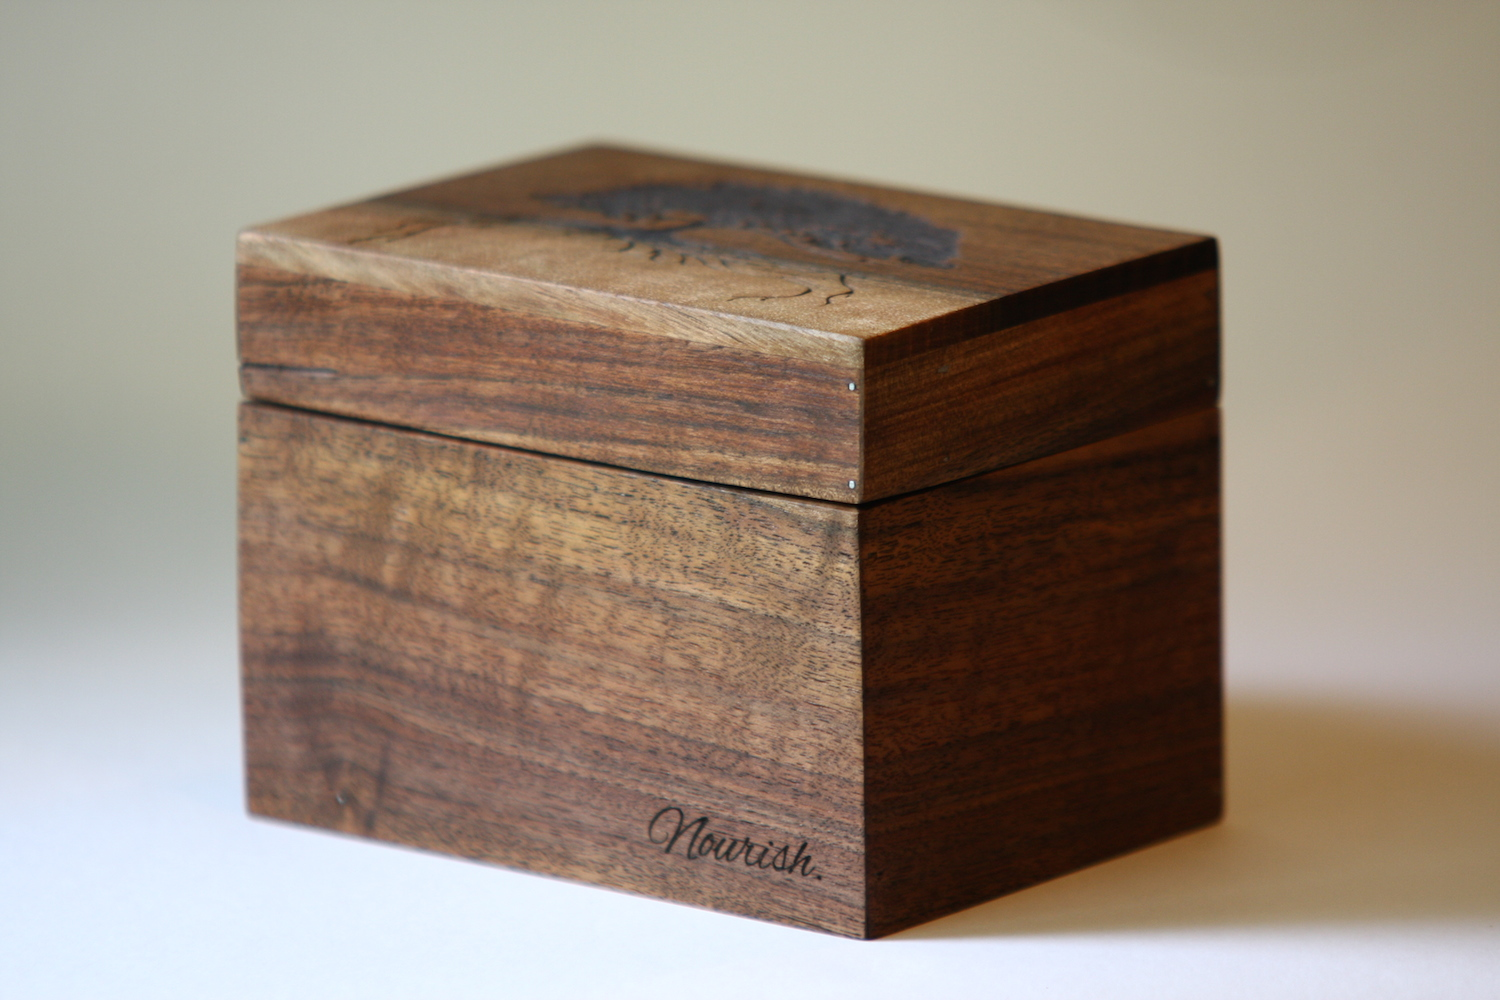 Custom made recipe box with laser engraved image and text